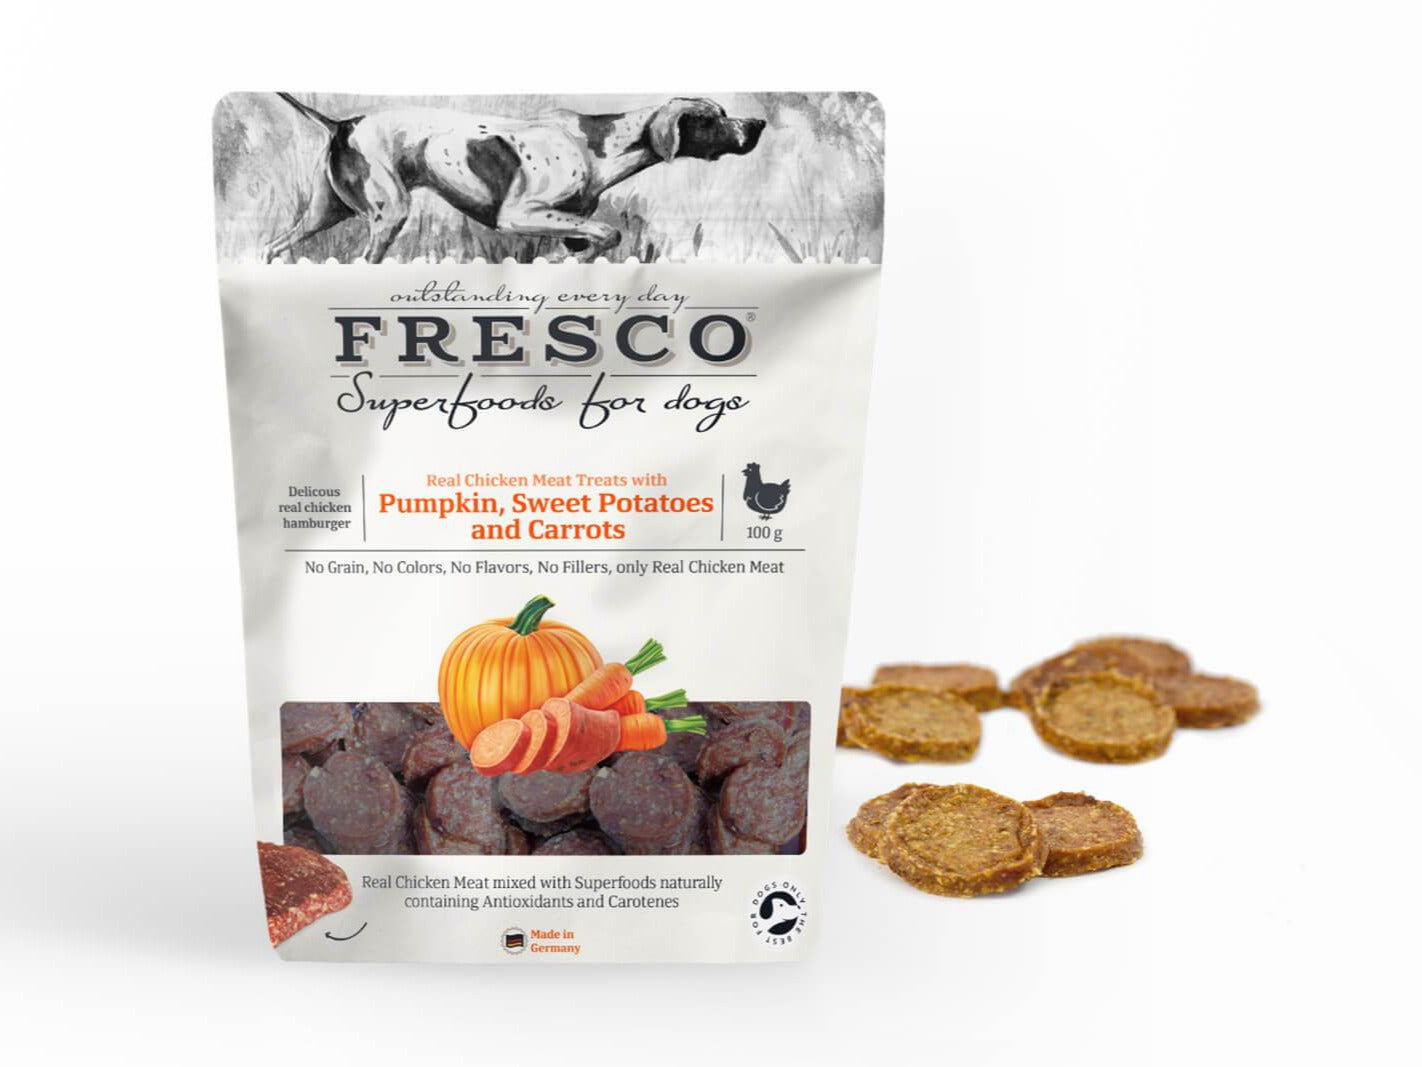 A bag of Fresco hamburgers with pumpkin, sweet potato and carrots with example hamburgers at the side